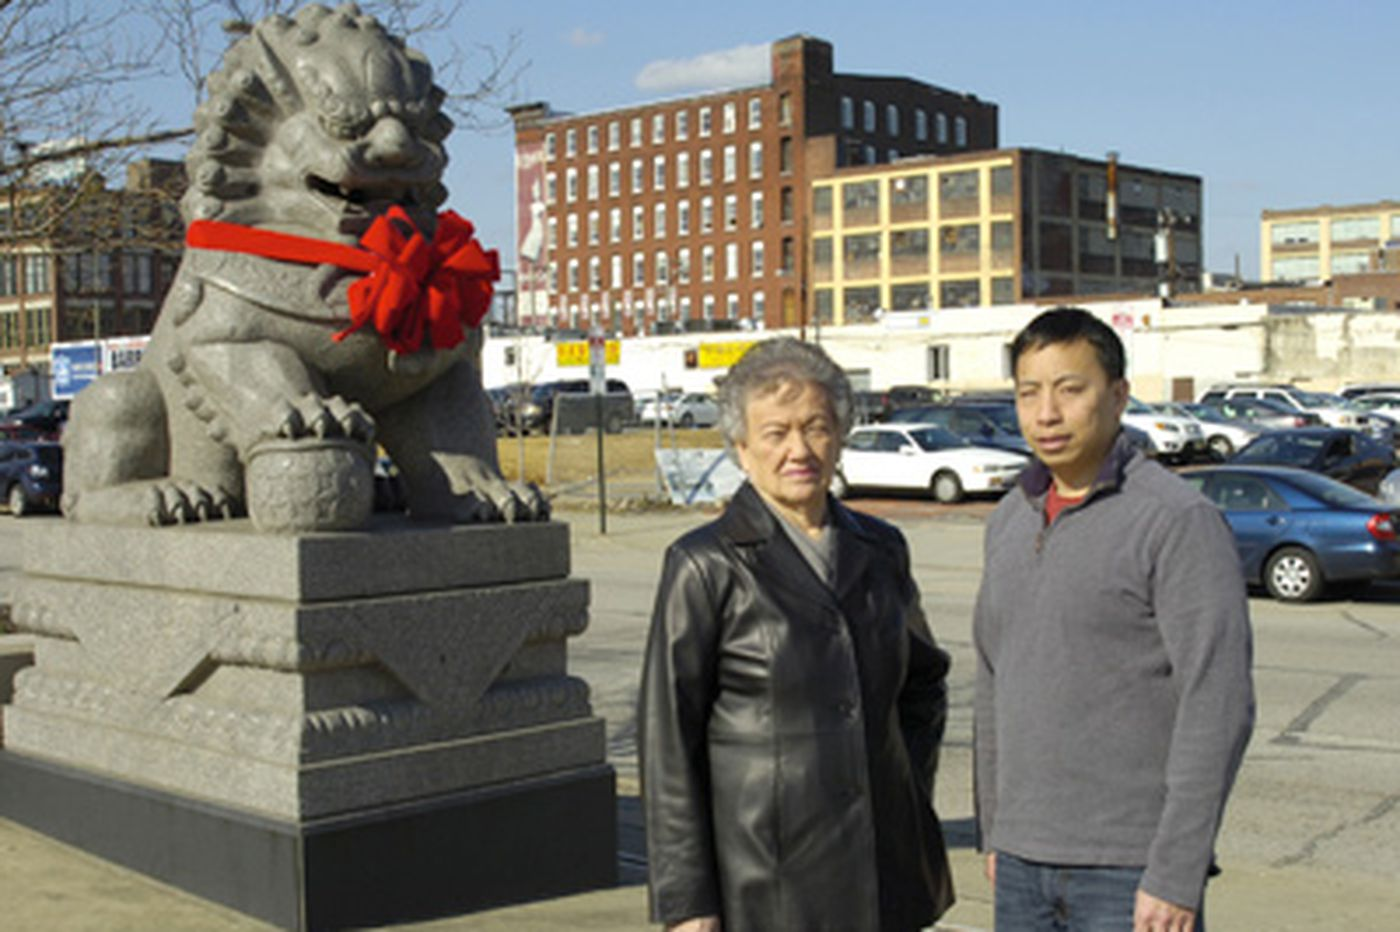 Towering ambitions for Chinatown